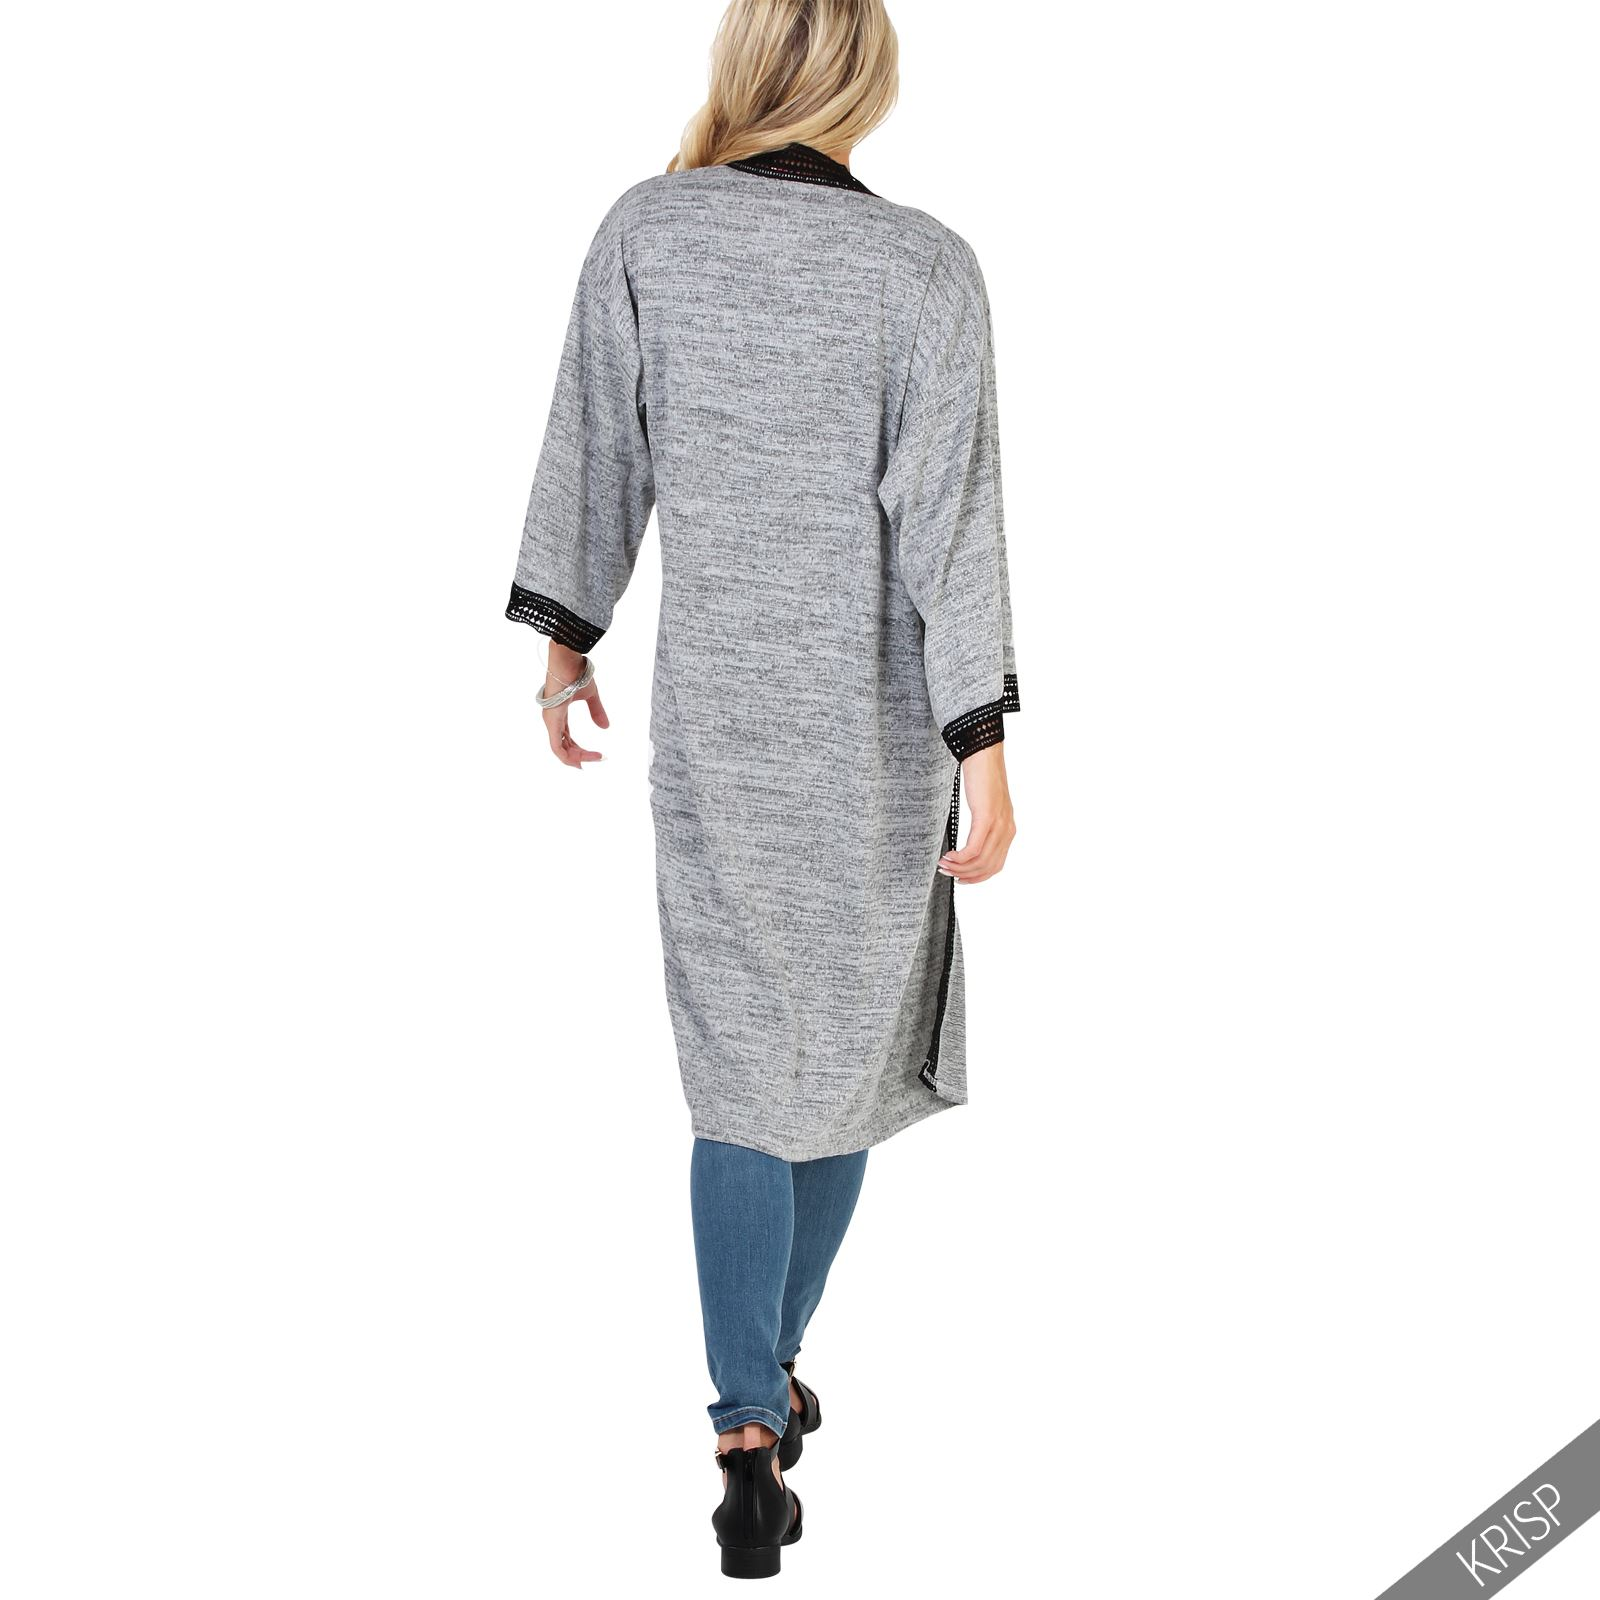 femmes kimono long cardigan manche longue veste longue fashion boho tricot ebay. Black Bedroom Furniture Sets. Home Design Ideas